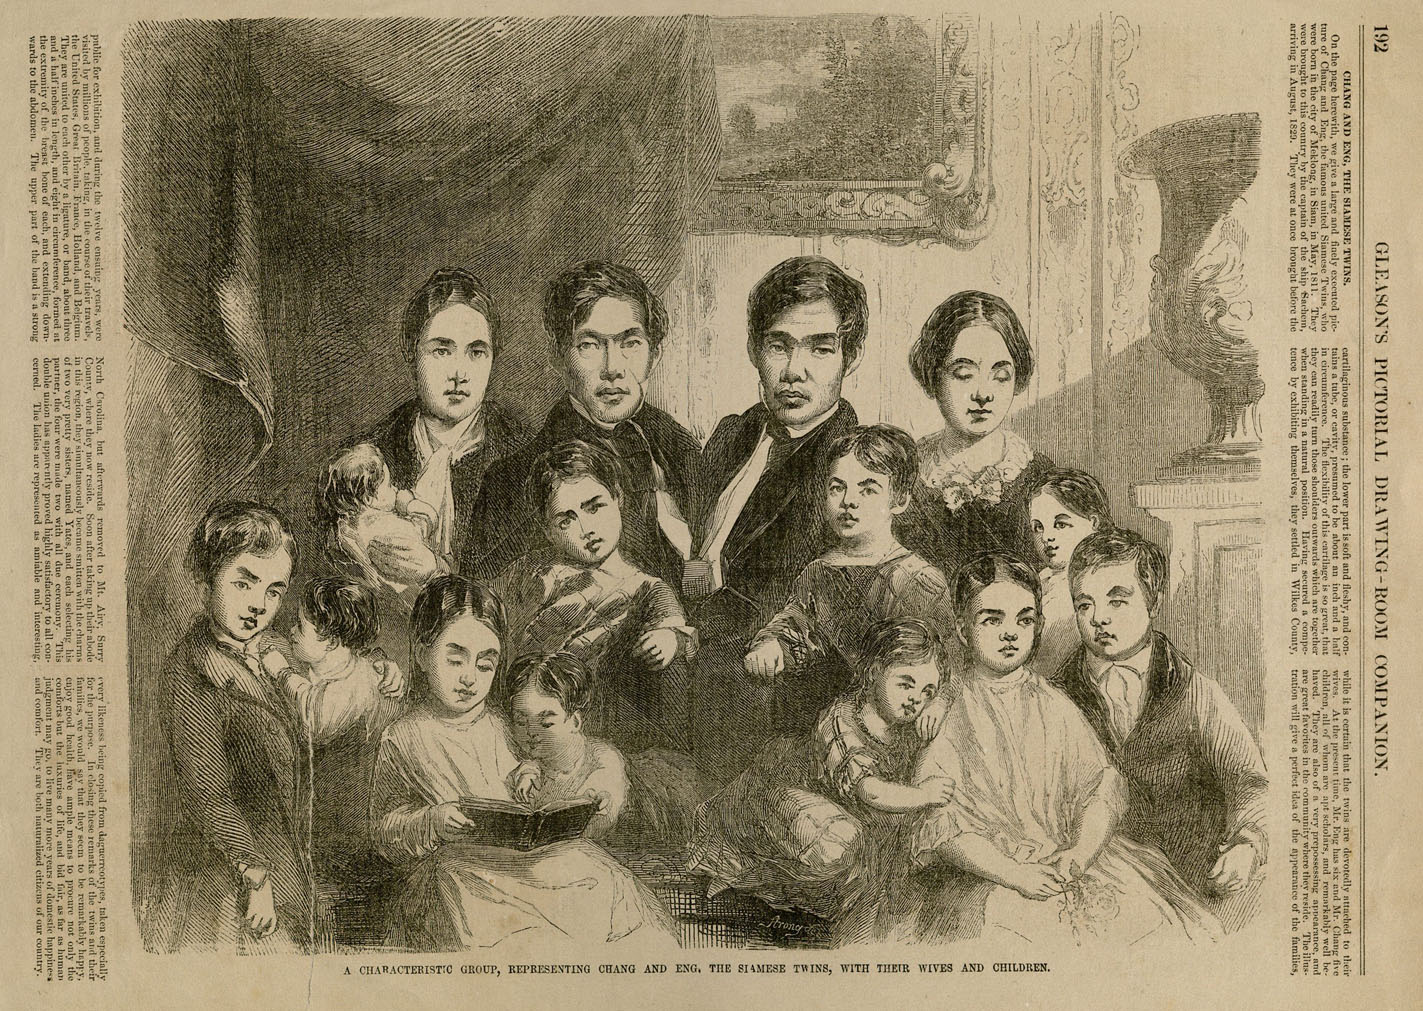 Chang and Eng Bunker with their families. Popular Entertainment Prints. Harvard Theatre Collection